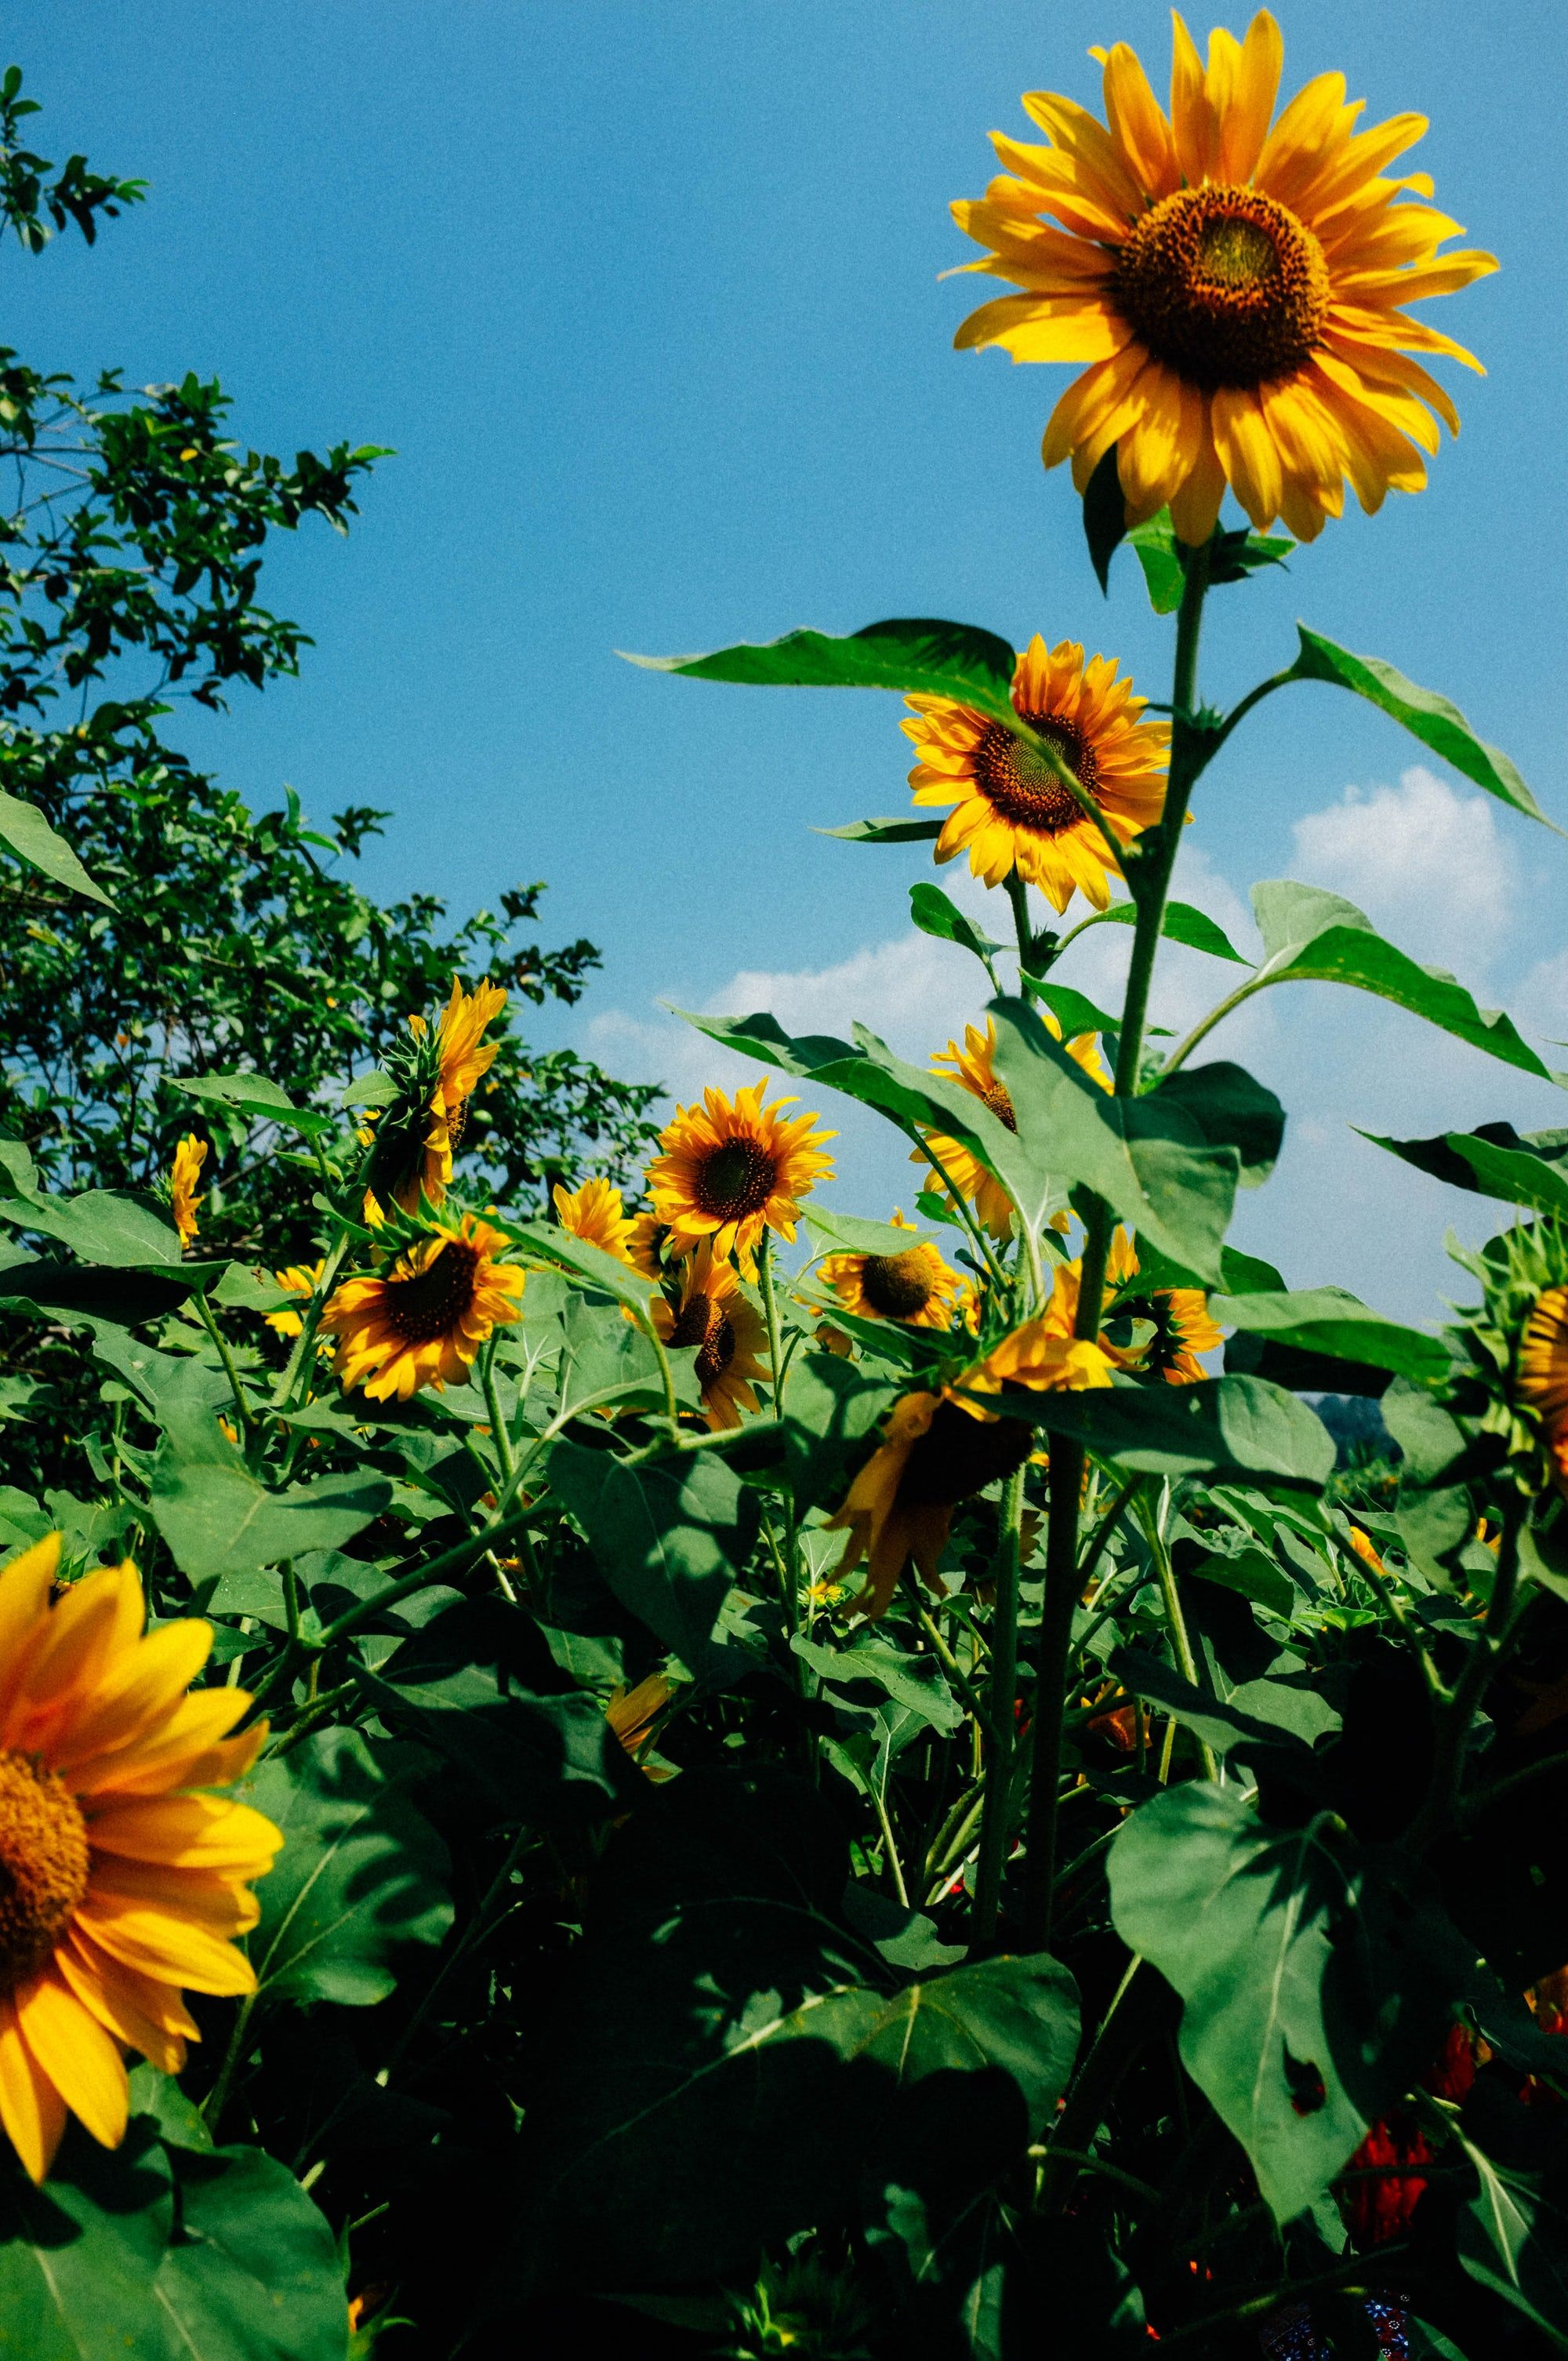 Thanks To Kilarov Zaneit For Making This Photo Available Freely On Unsplash In 2020 Sunflower Pictures Sunflower Fields Sunflower